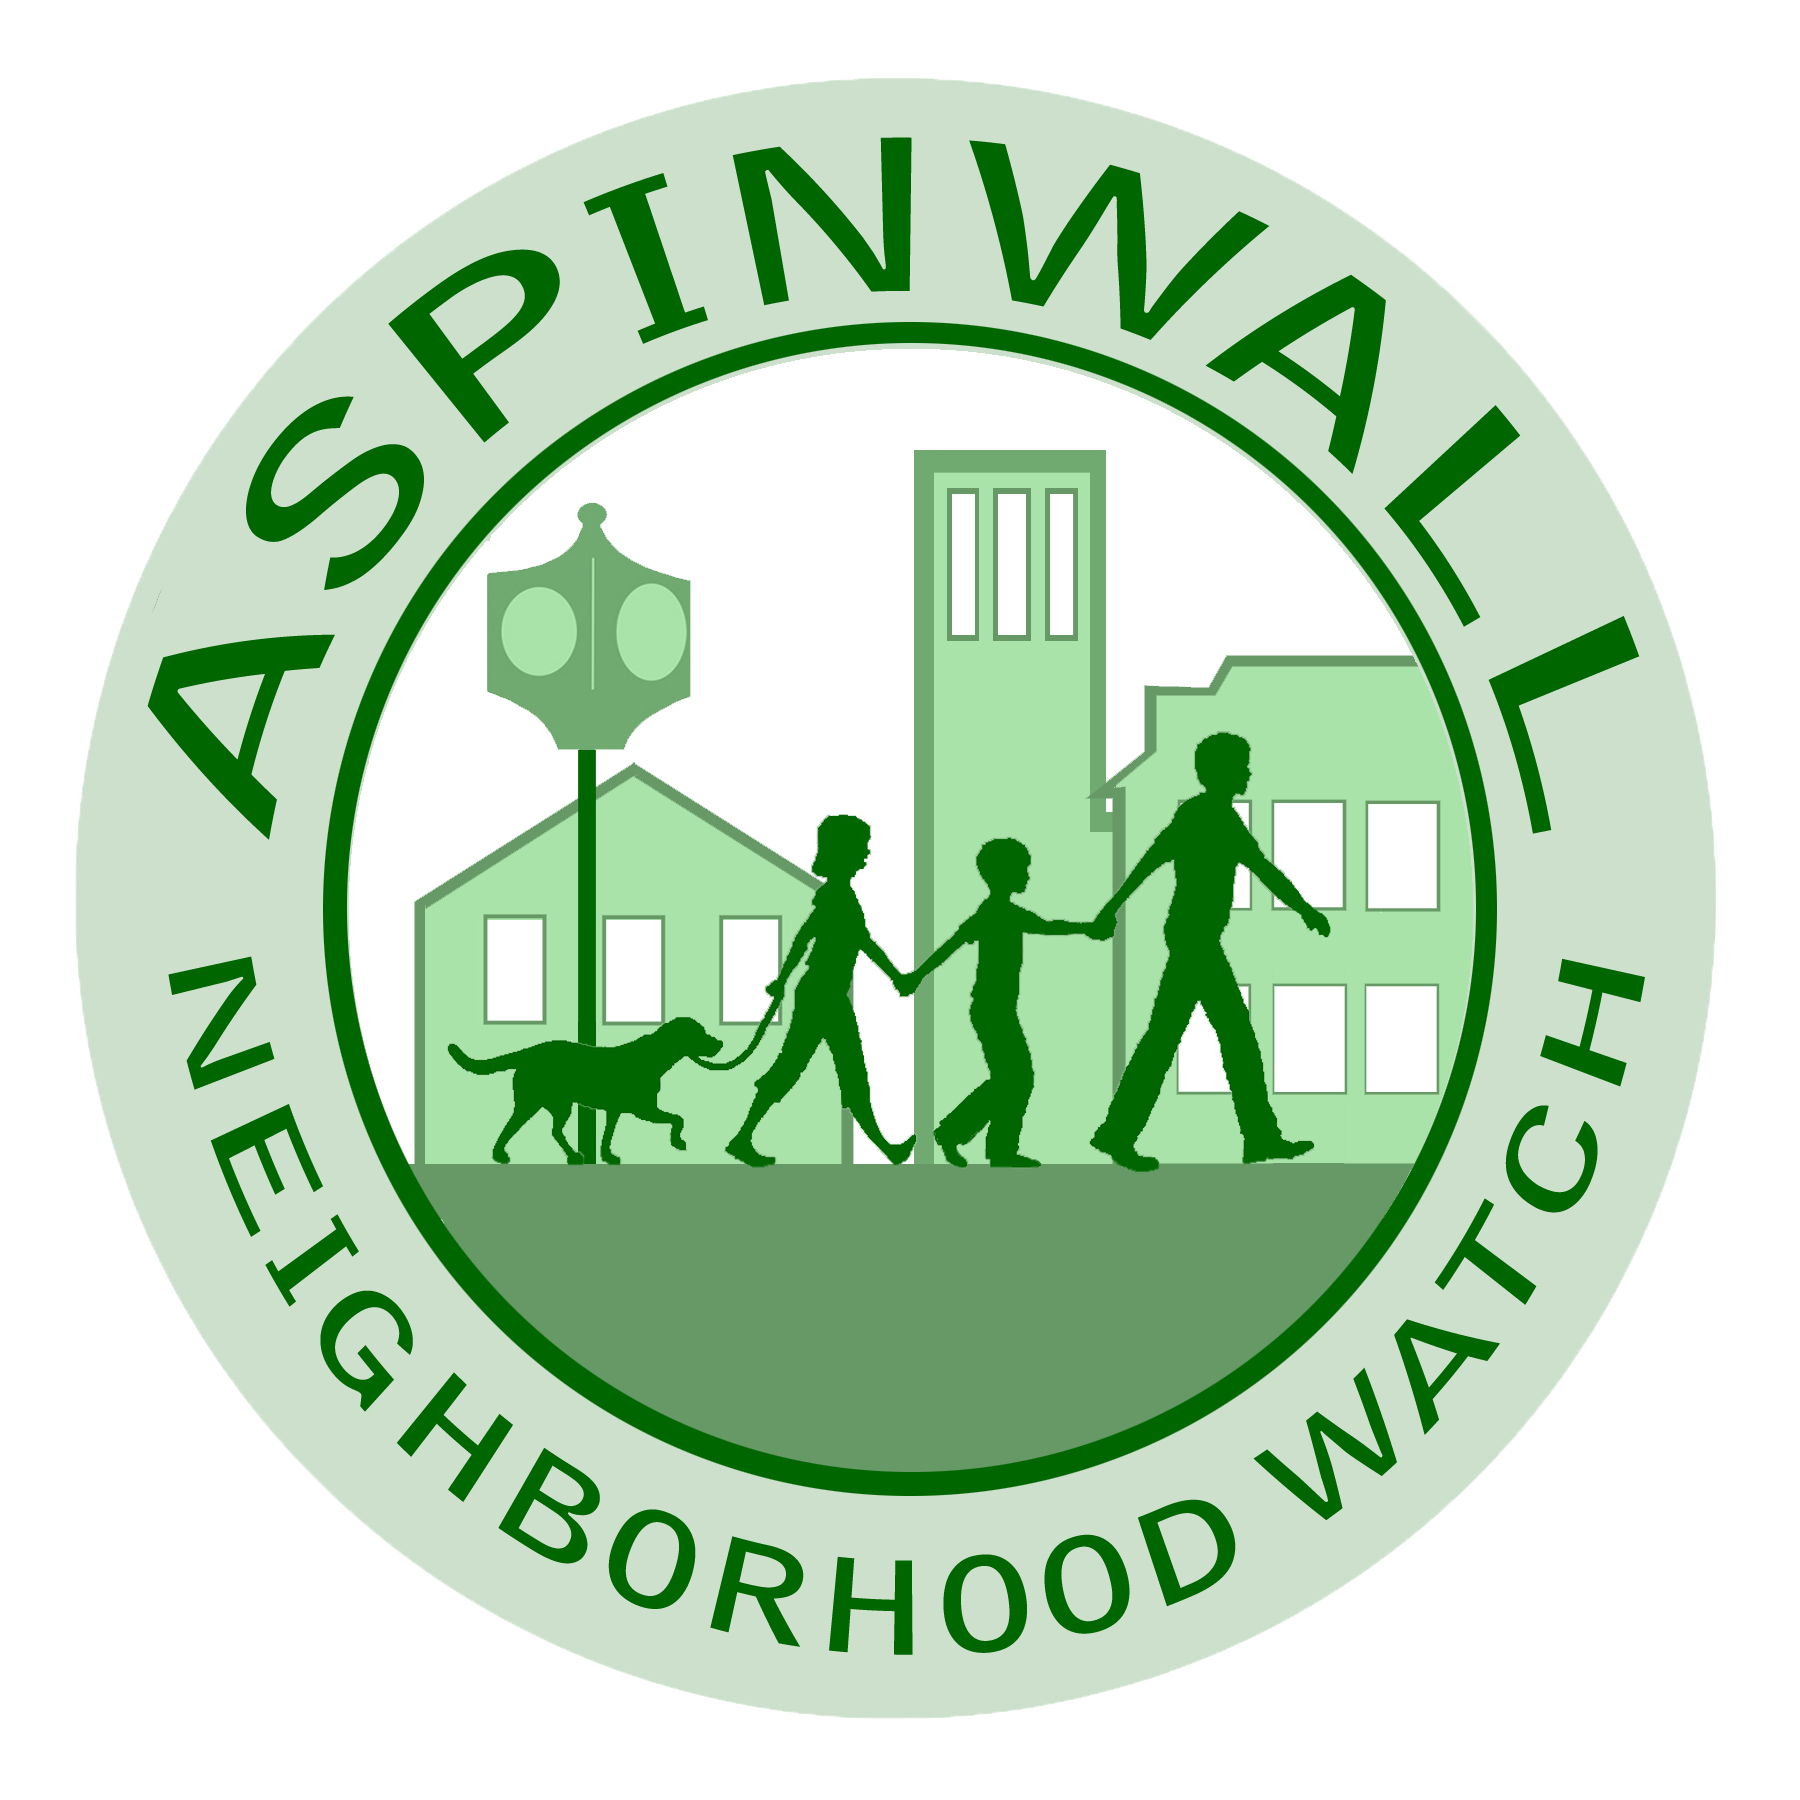 ANW – Aspinwall Neighborhood Watch